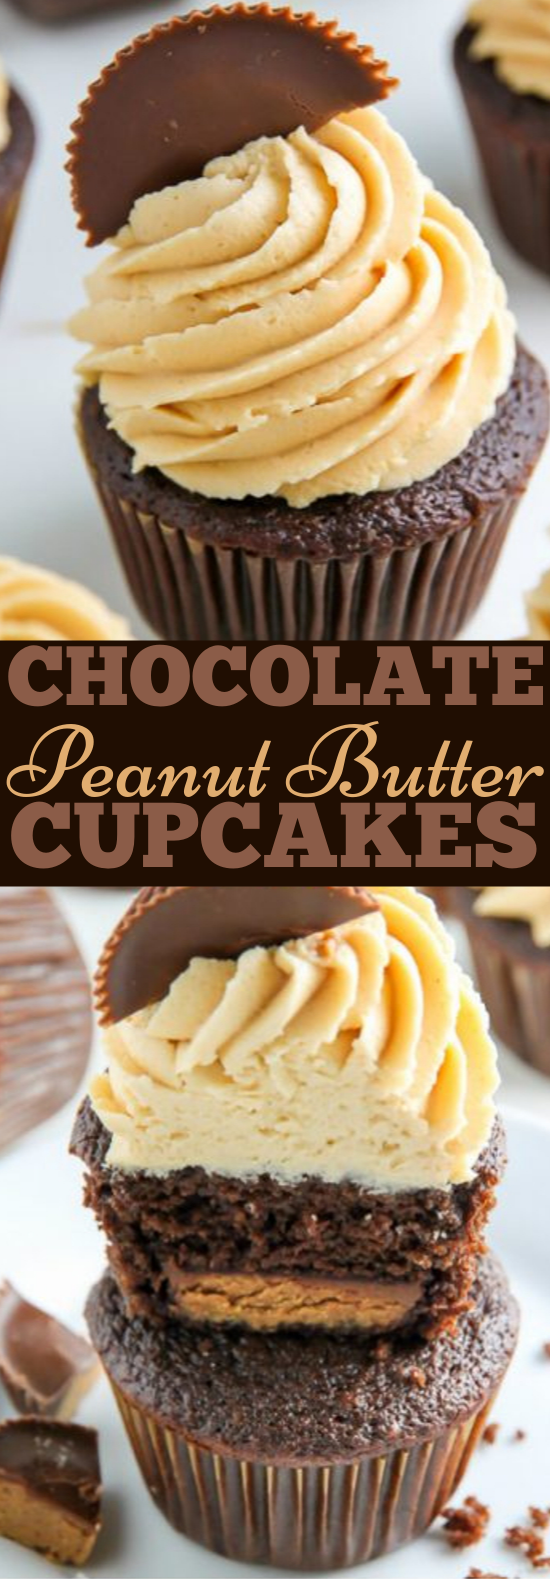 Chocolate Peanut Butter Cupcakes #desserts #cupcakes